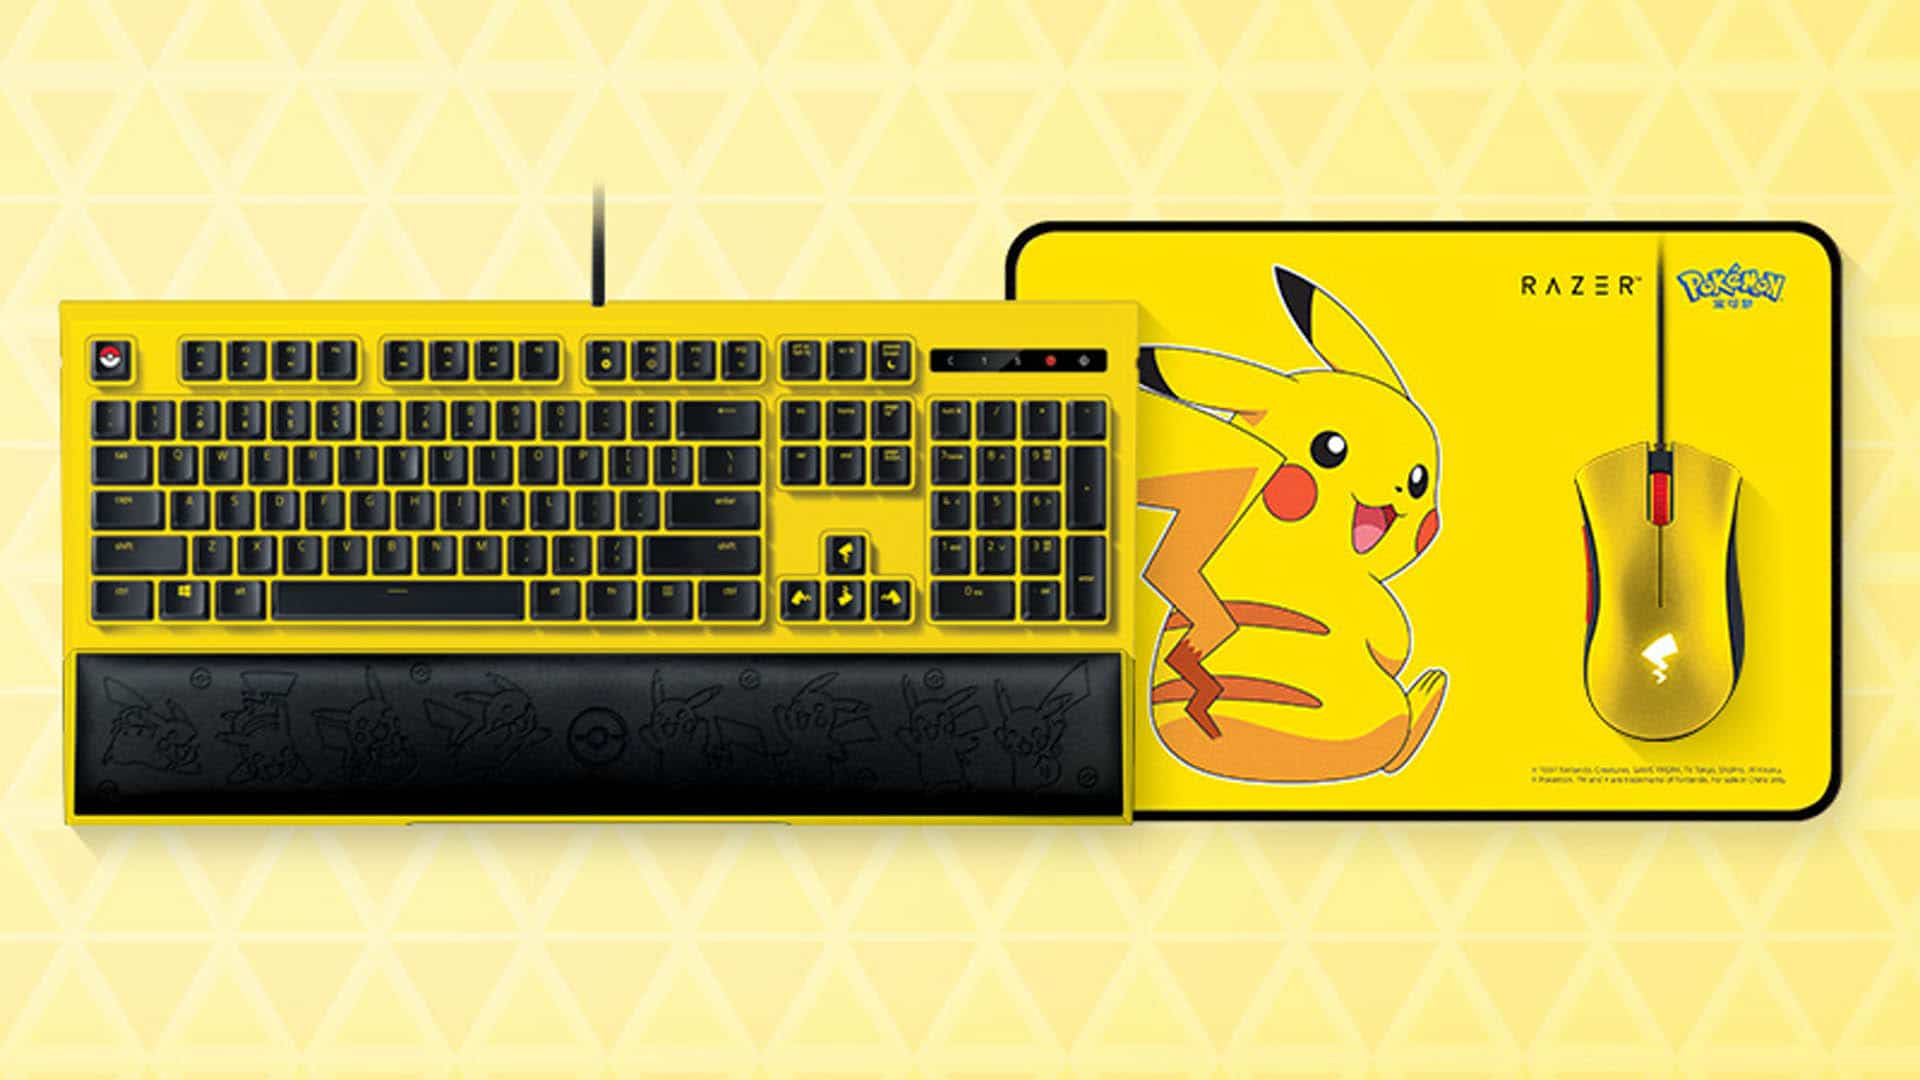 Razer's Pokemon PC gear is only available in China… and it's breaking my heart